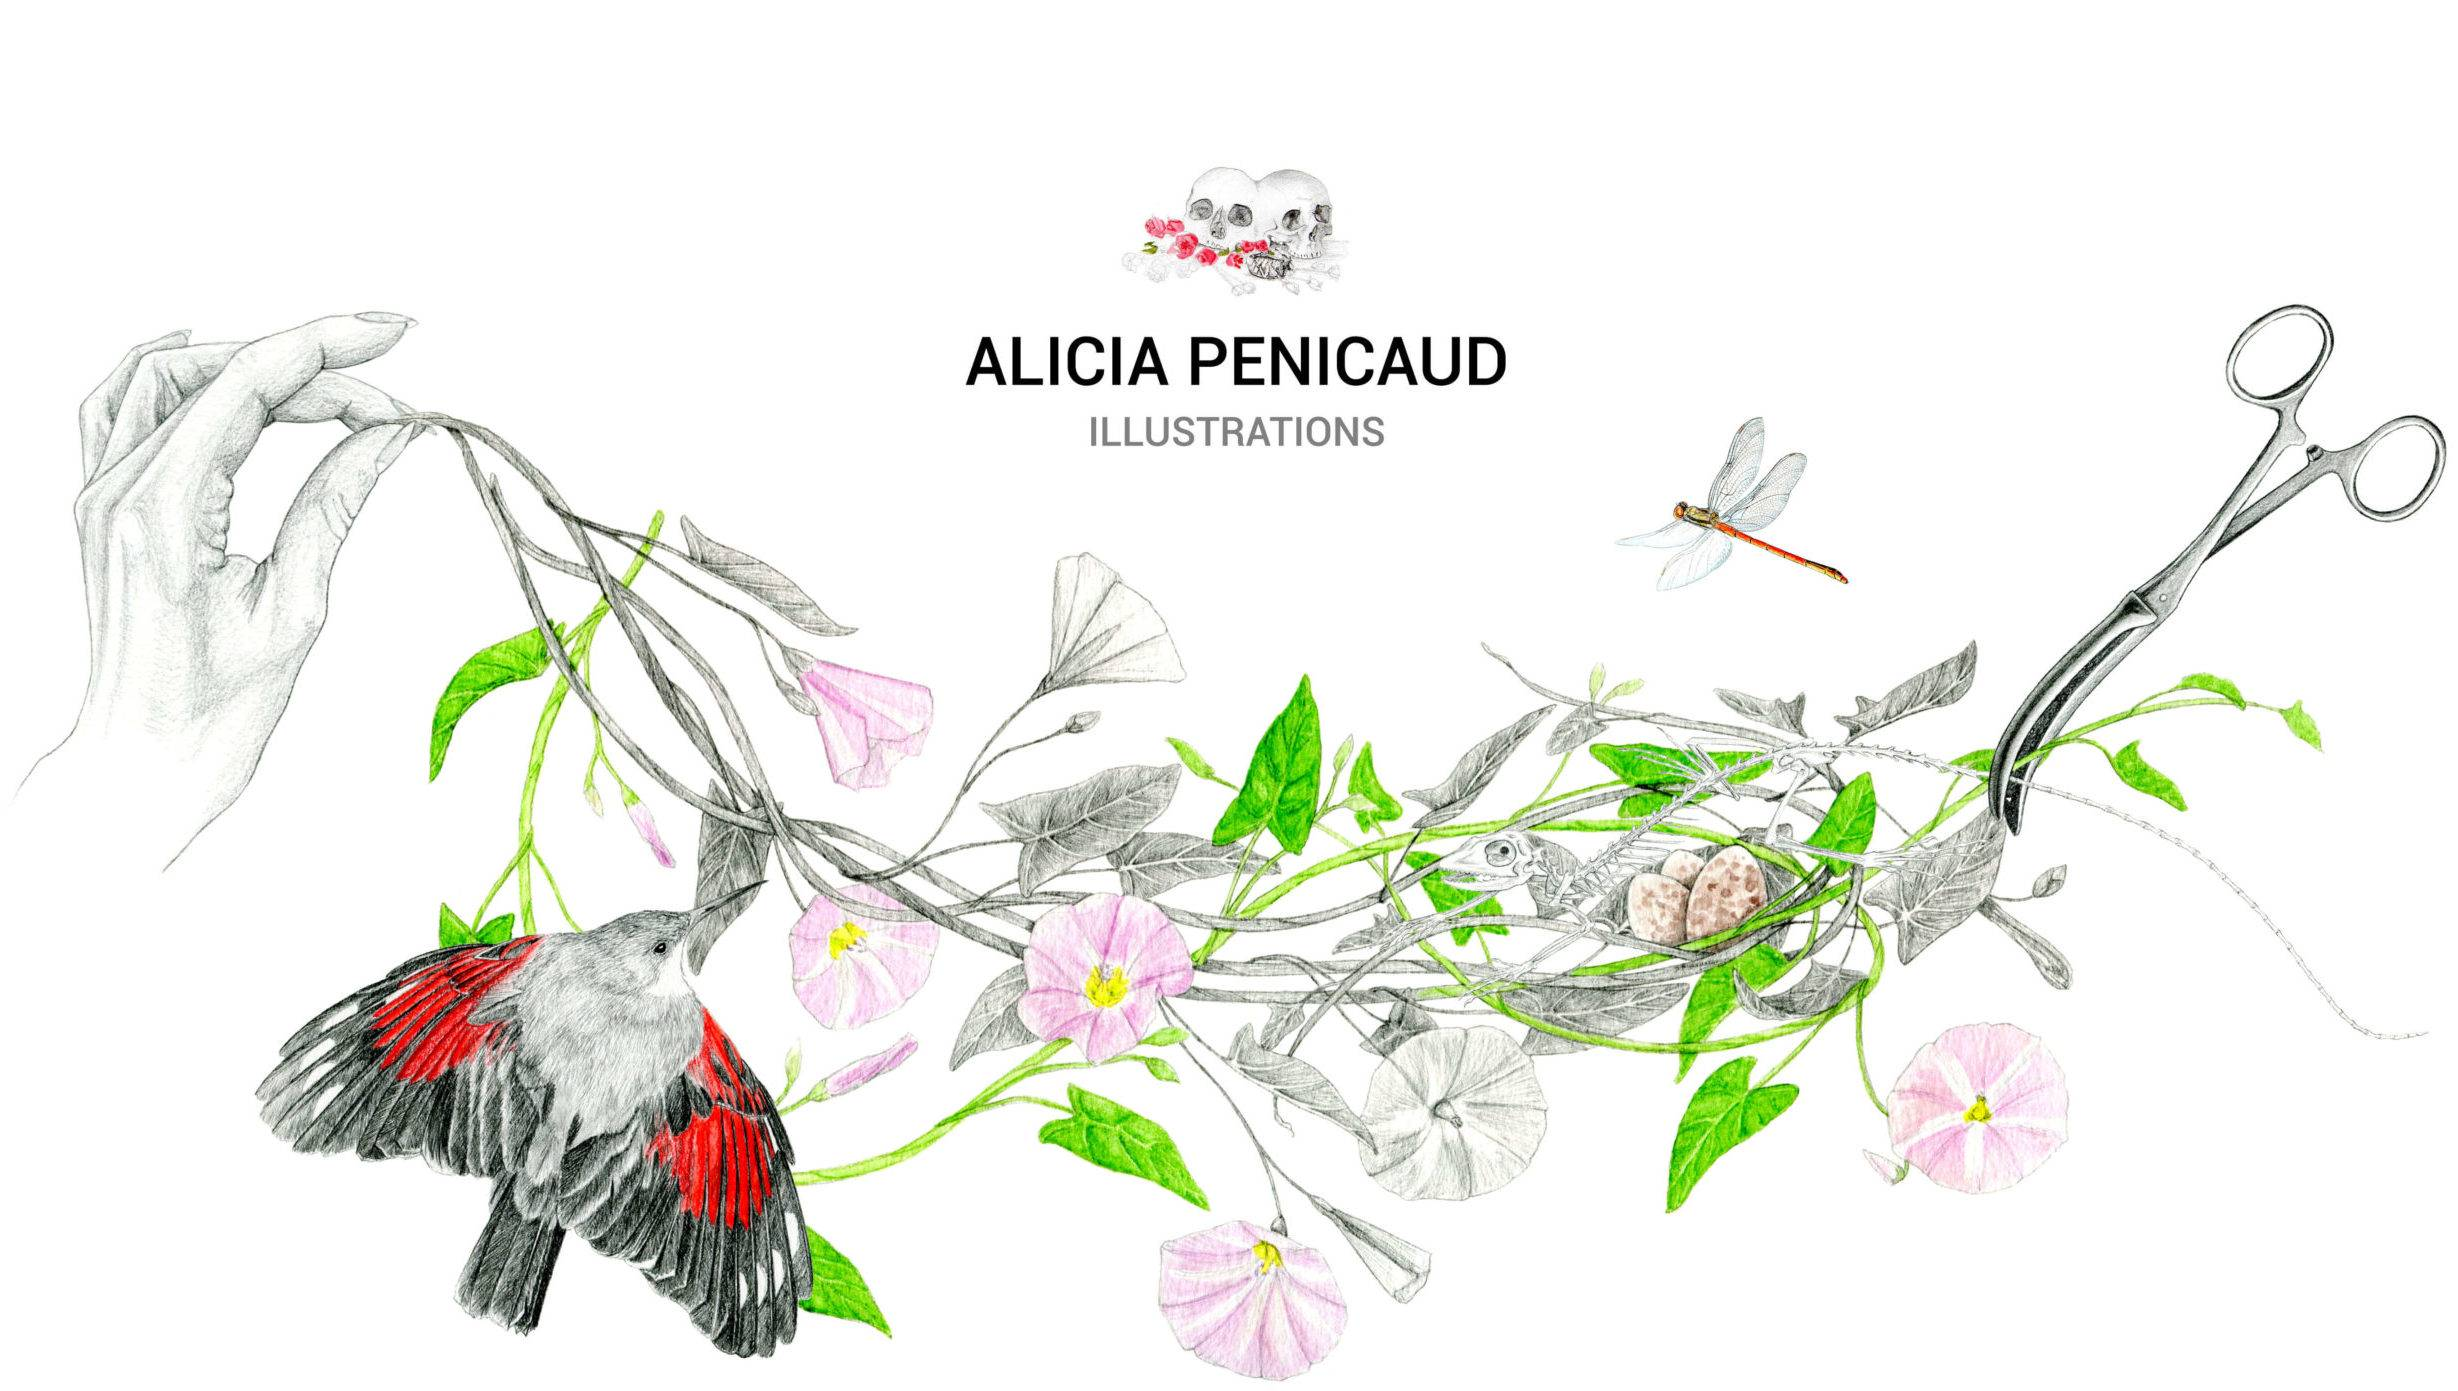 illustration site Alicia Pénicaud Illustrations, illustration originale Alicia Pénicaud, illustration naturaliste, illustratrice freelance France, illustratrice Limoges, illustration d'objet, illustration luxe, illustration médicale, illustration animalière, illustration portrait, illustration packaging